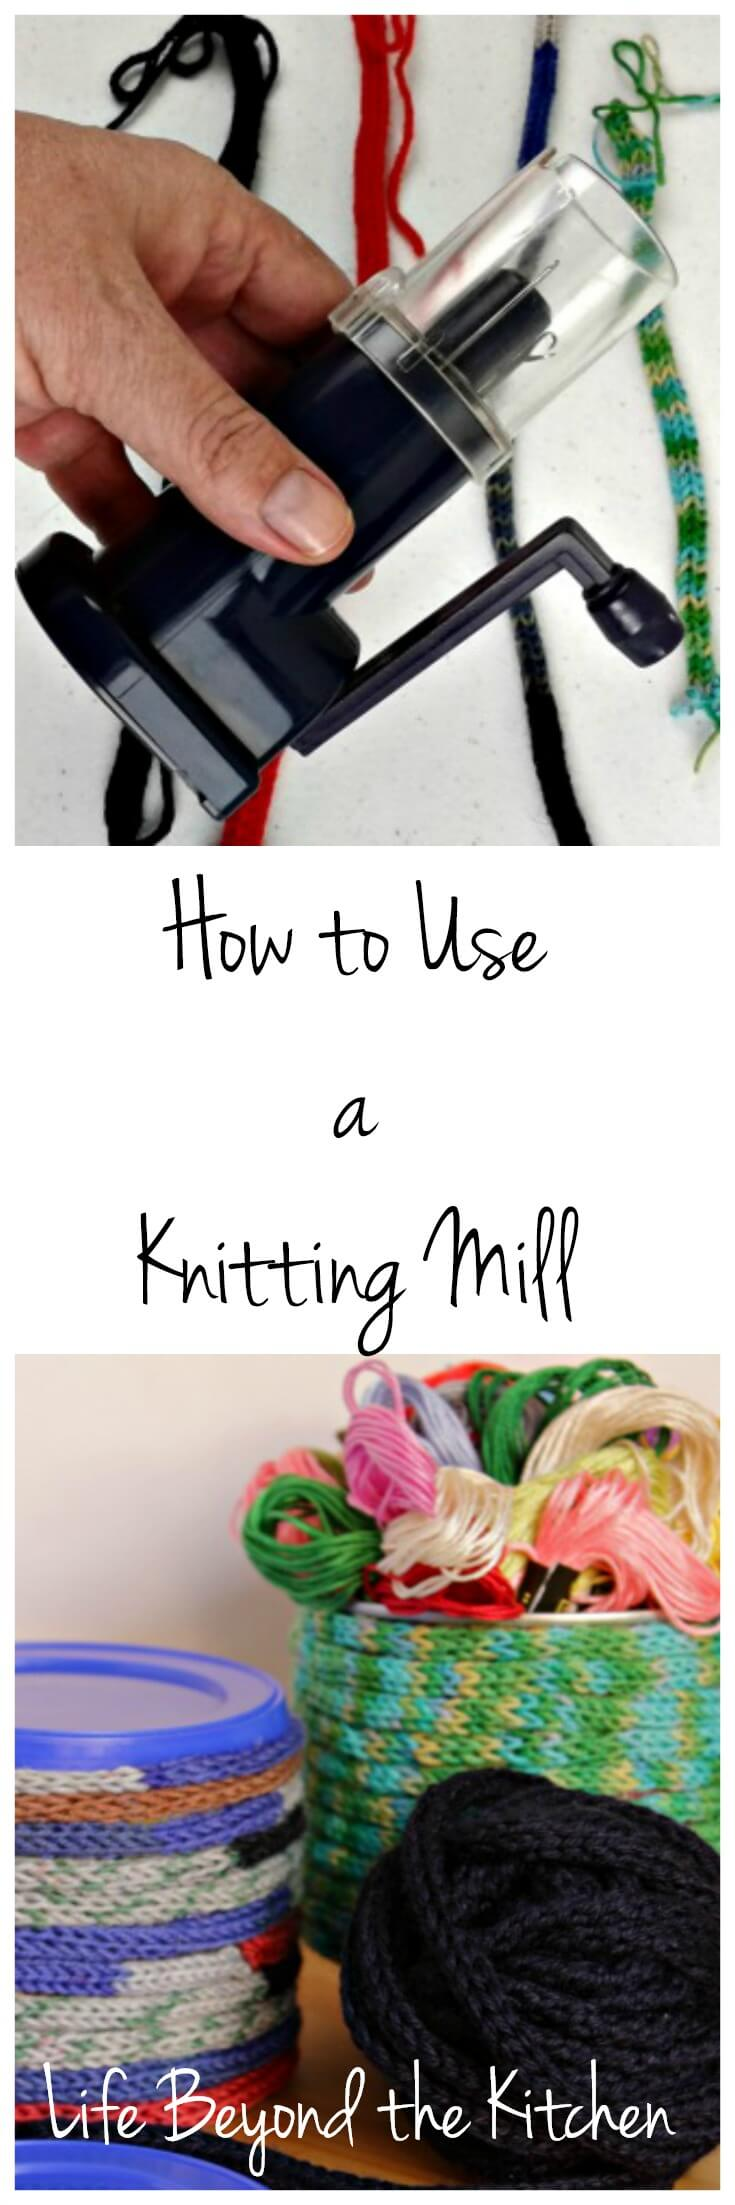 Learn how to use a #knitting mill. No previous #knit or #crochet skill required! The cord produced can be used in a variety of #craft projects.